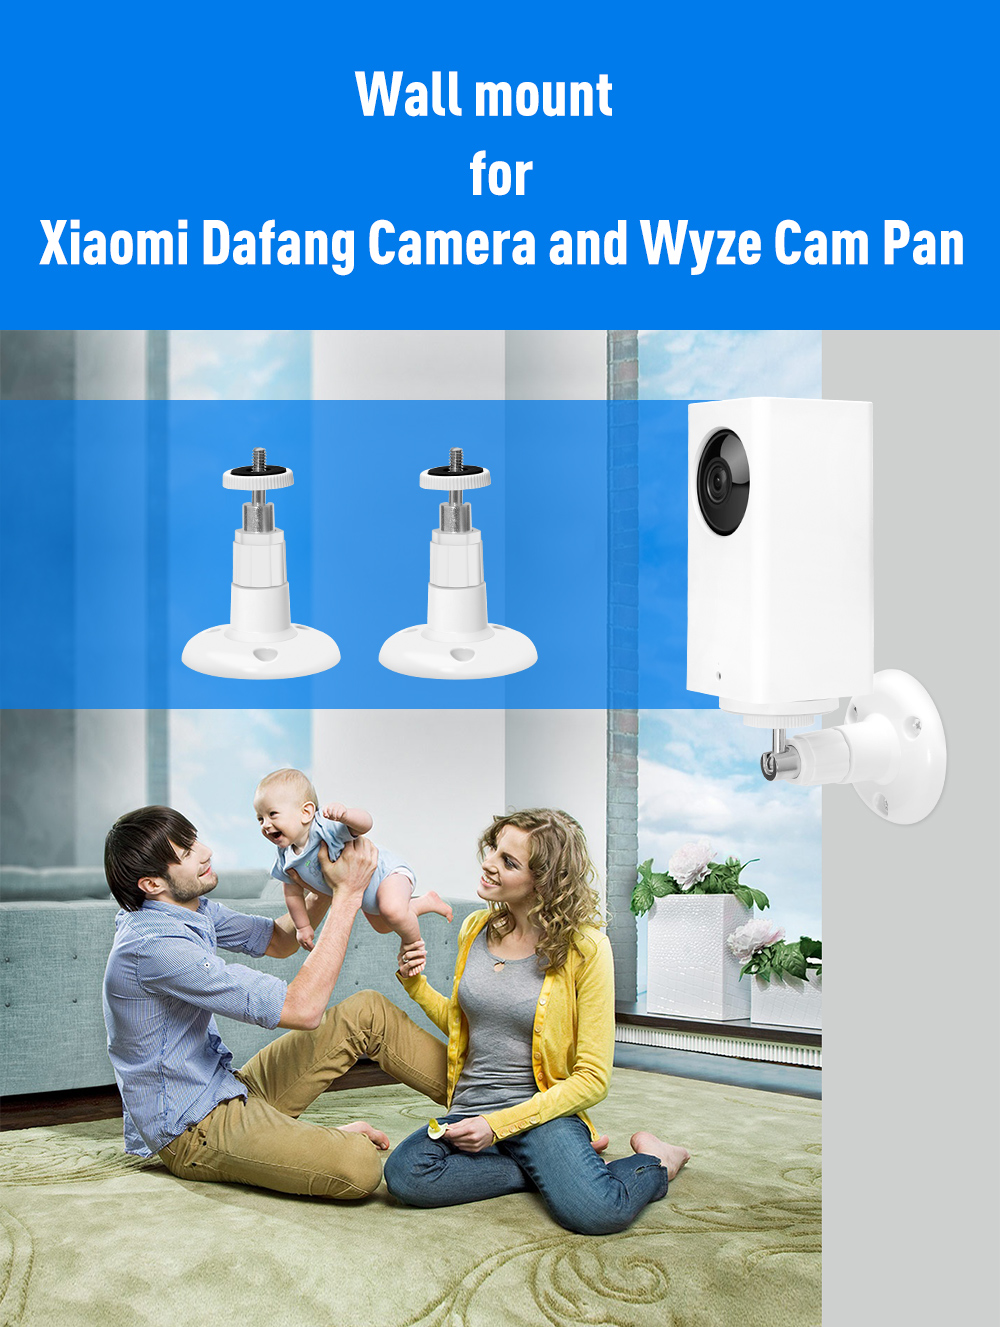 For XiaoMi Dafang camera and Wyze Cam Pan wall mount bracket